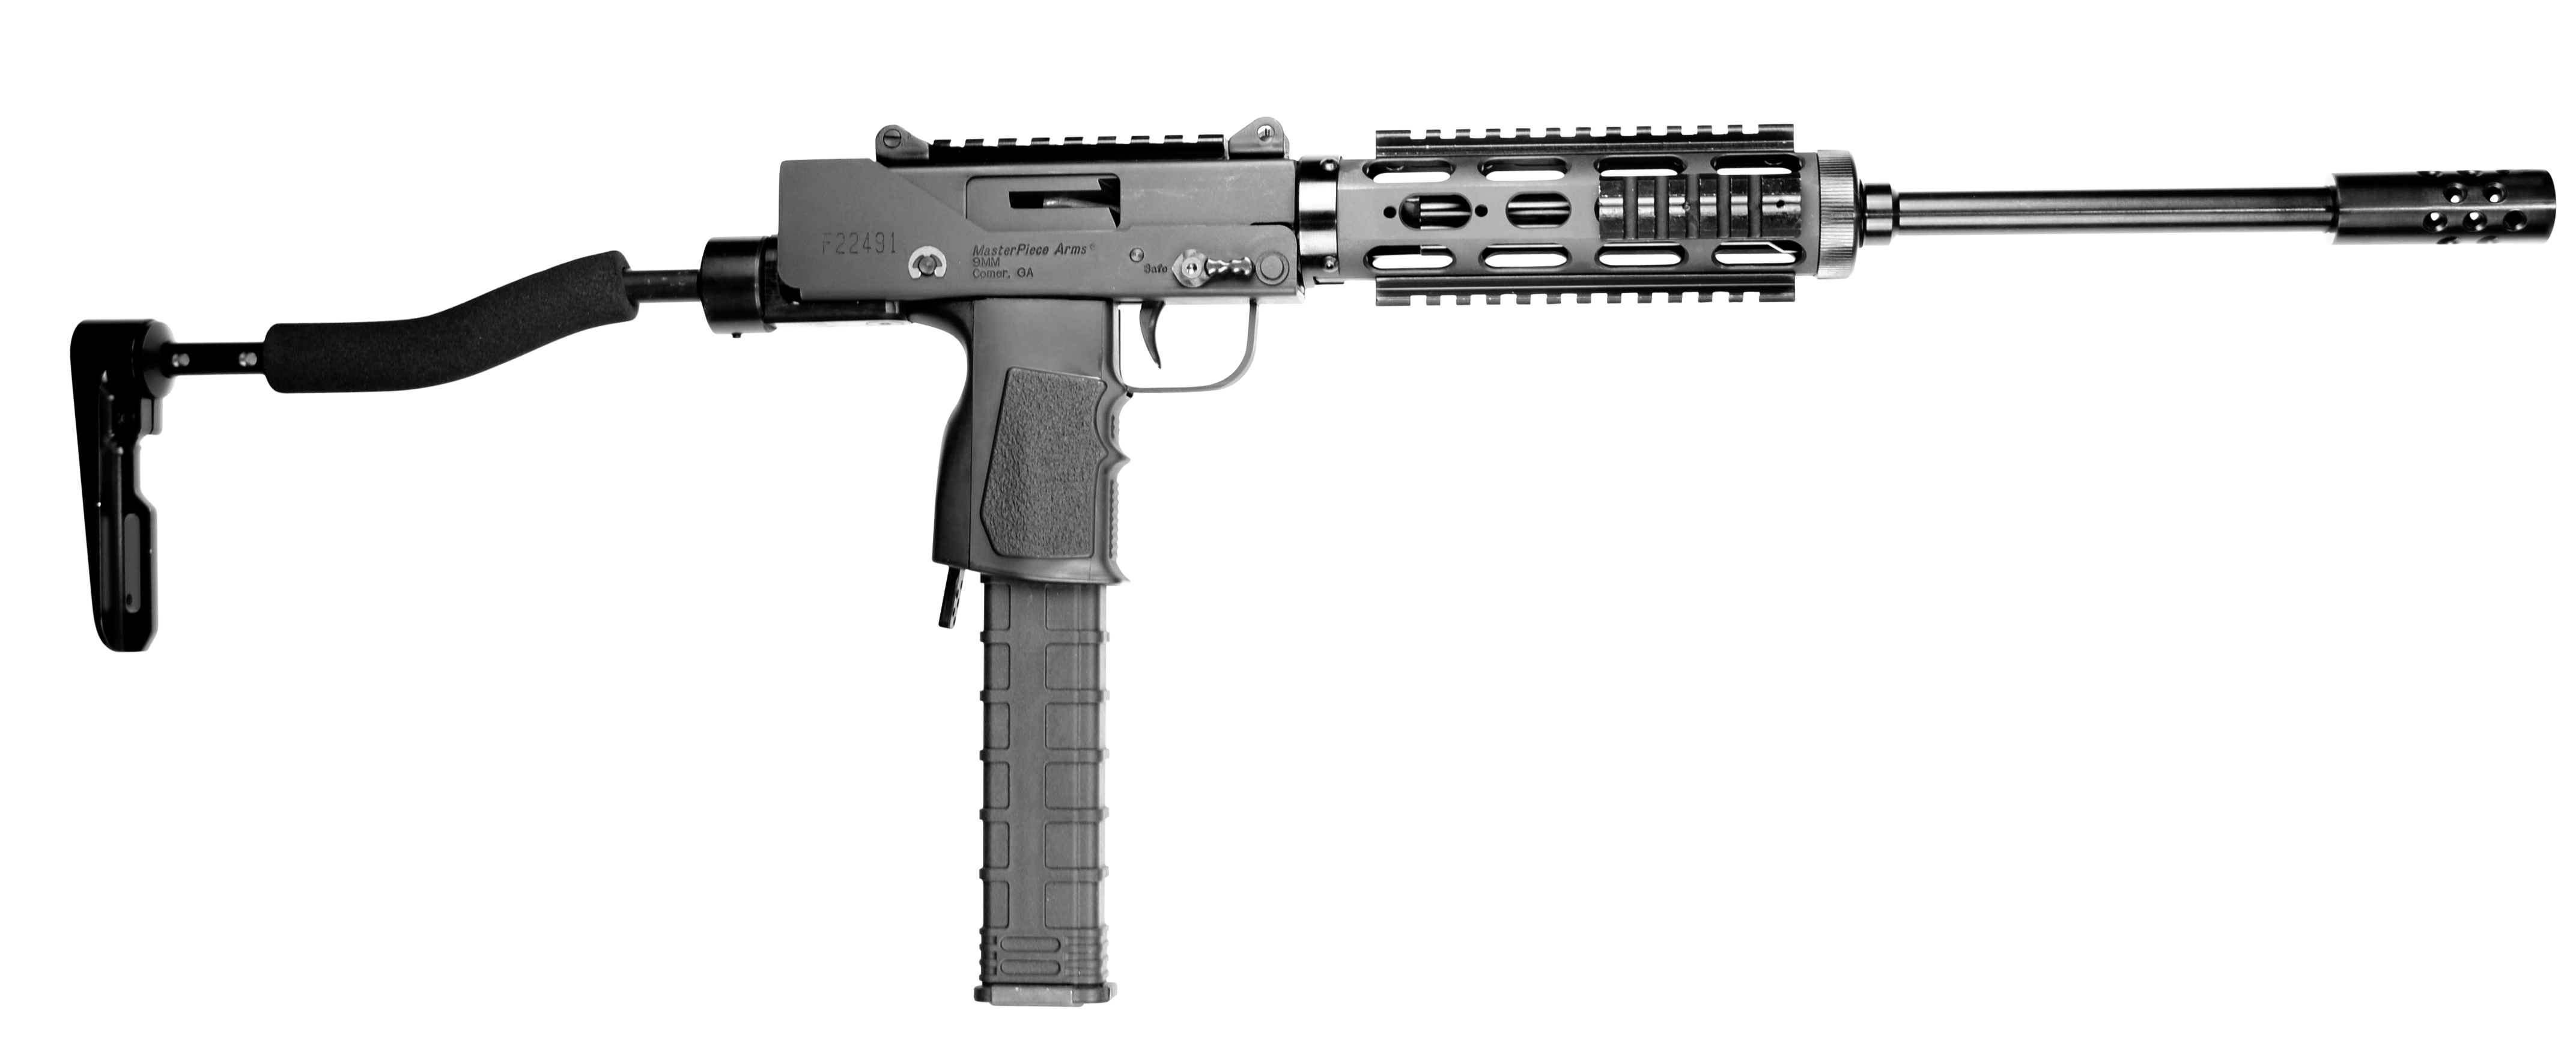 MasterPiece Arms 9300SST Defender Carbine Side Cocking TB Scope Mount Pistol Semi-Automatic 9mm 16